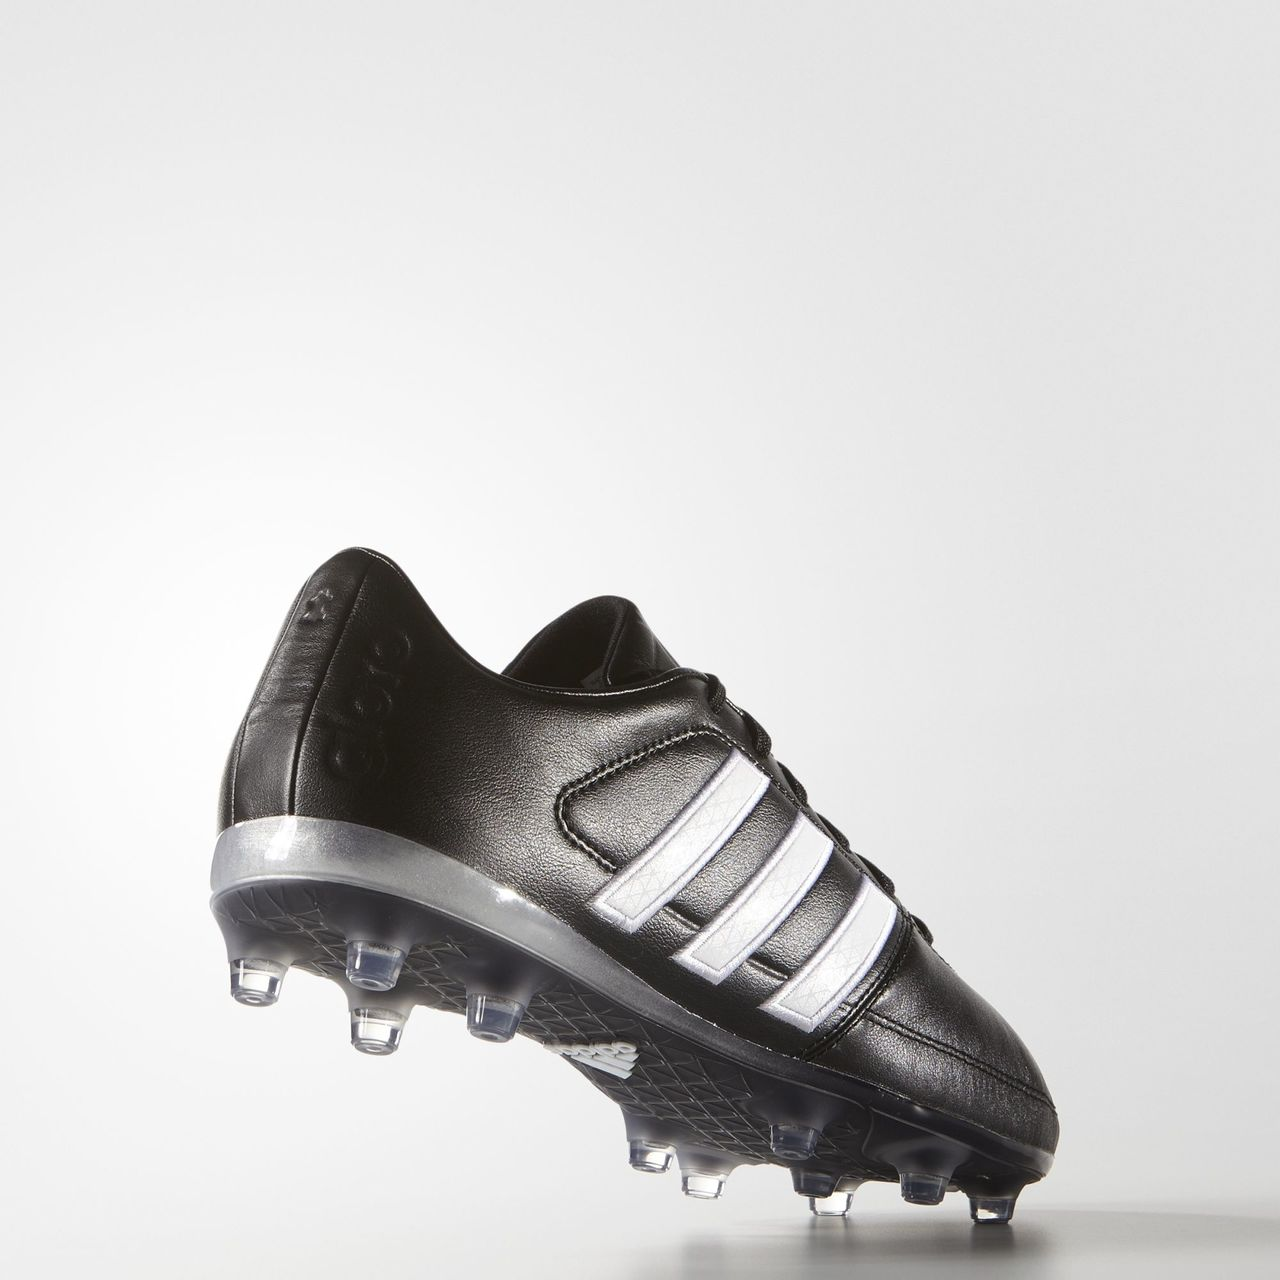 Adidas Gloro 16.1 - Core Black/White/Matte Silver